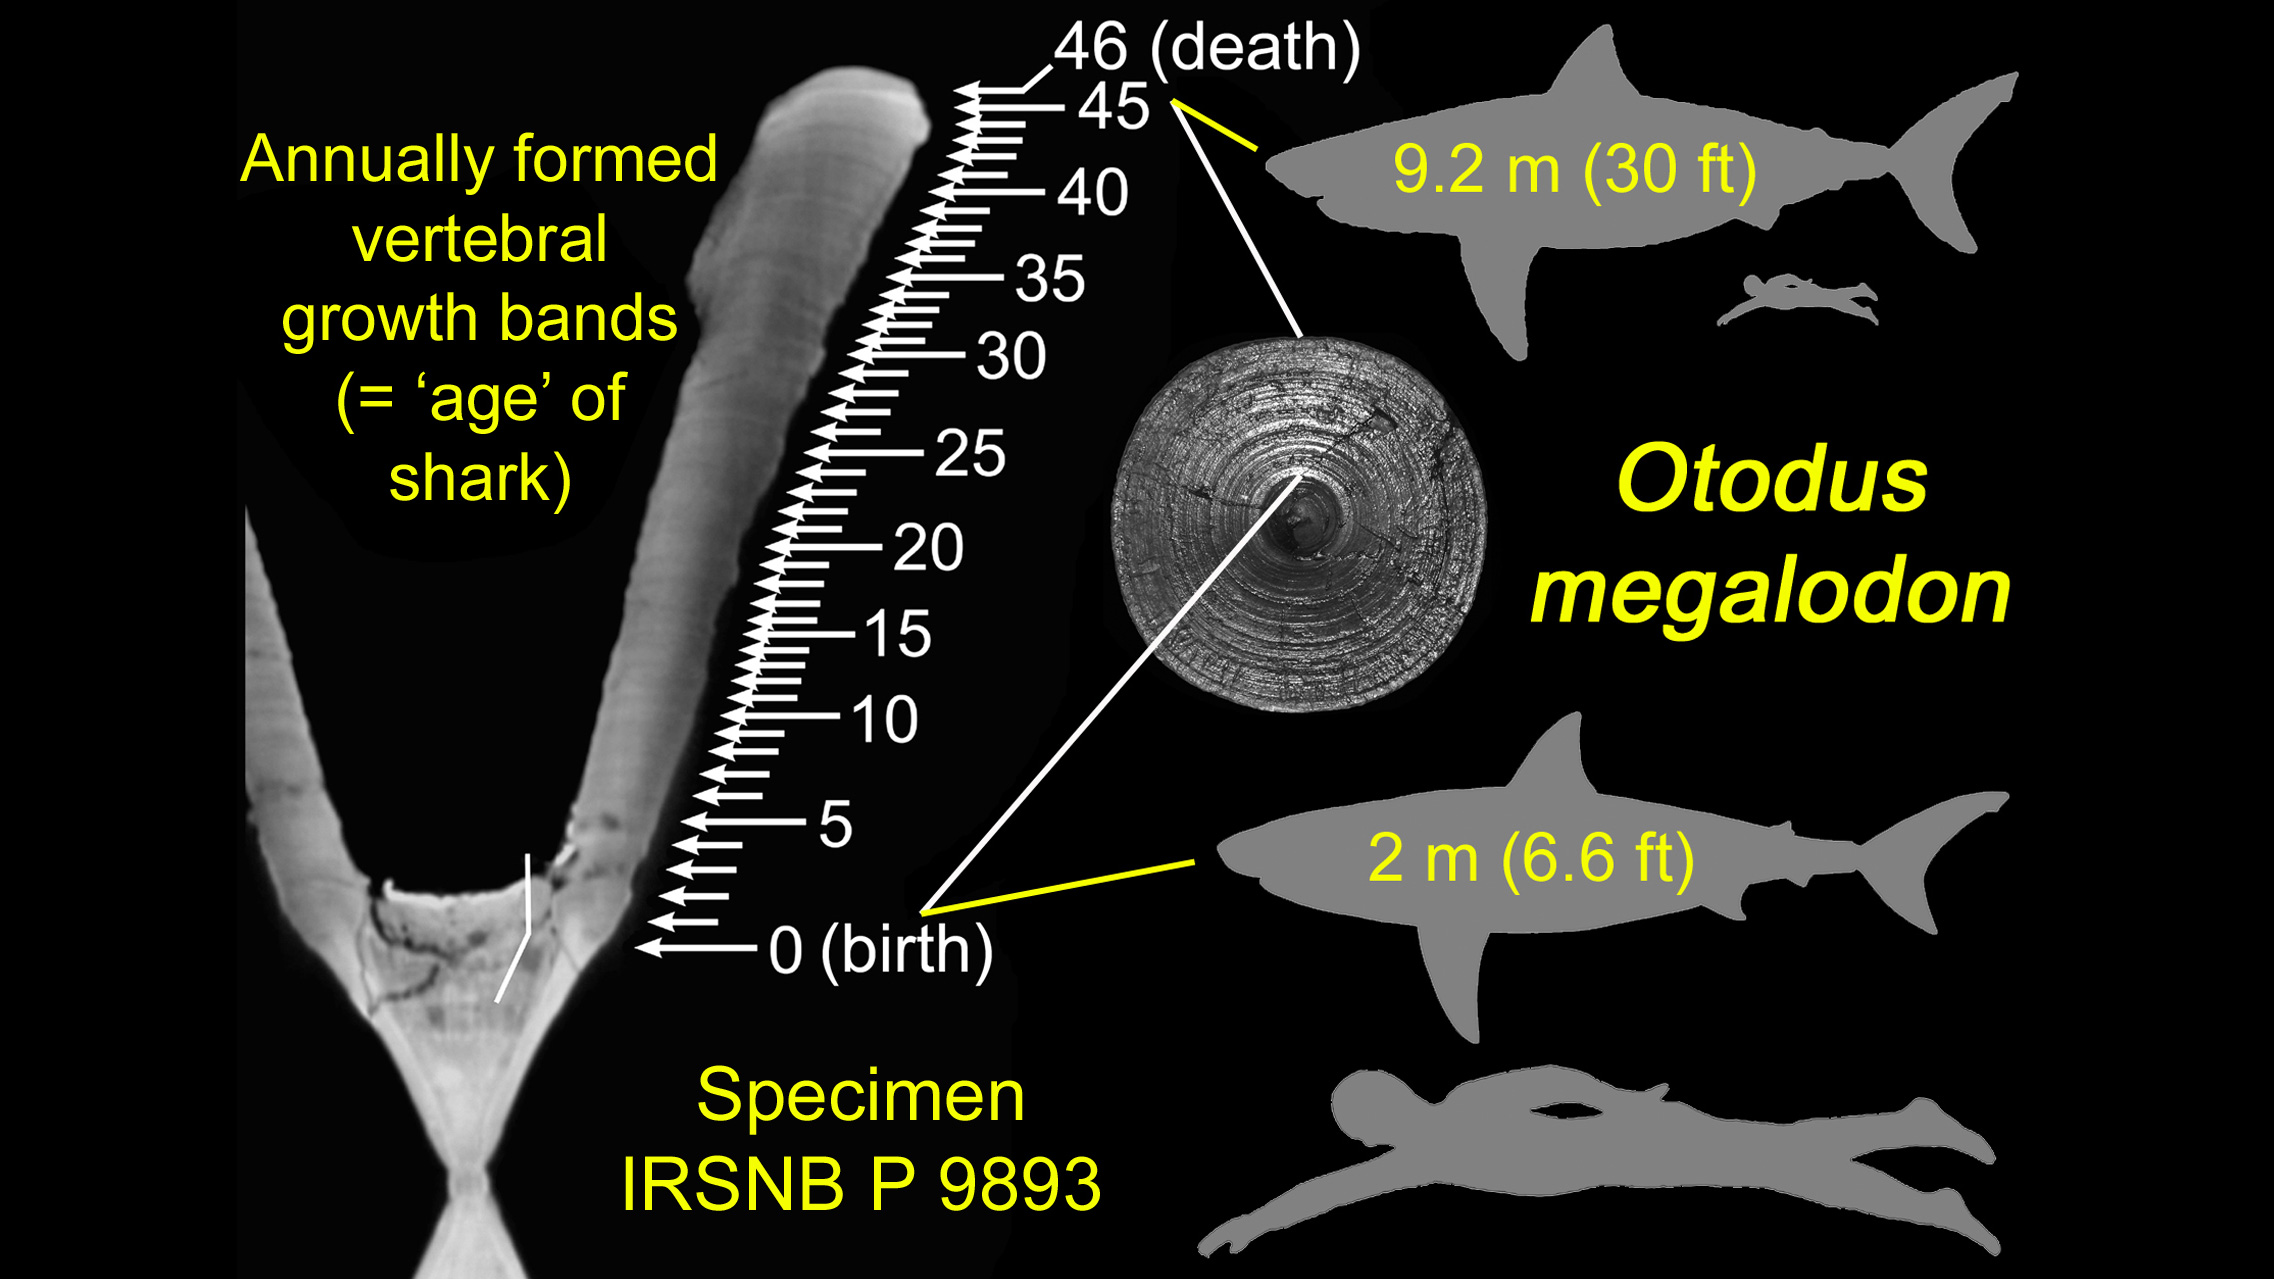 6-foot megalodon shark babies were cannibals in the womb, study says